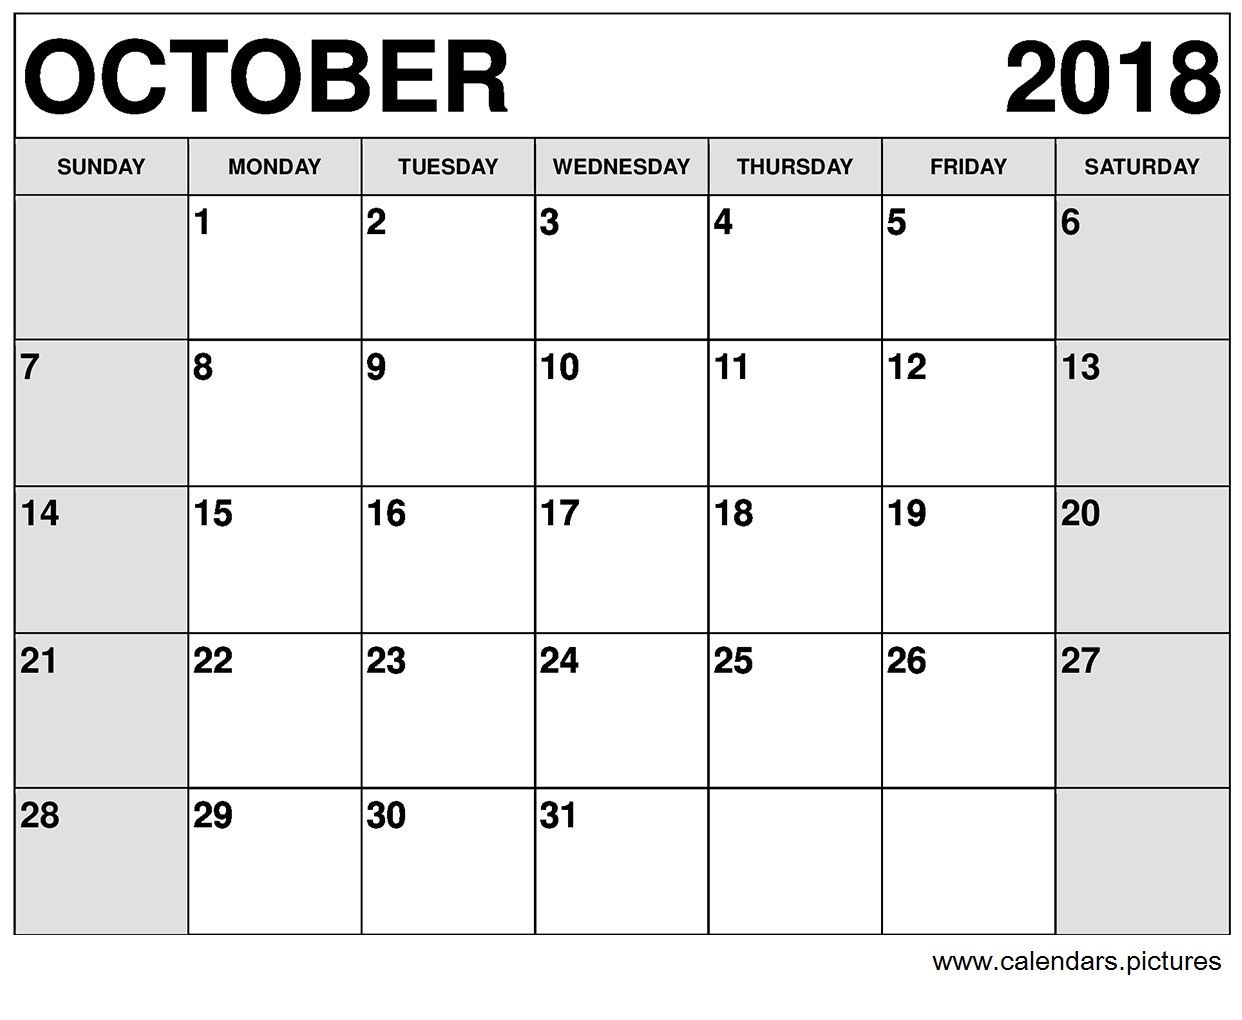 Monthly October 2018 Calendar Timetable Template